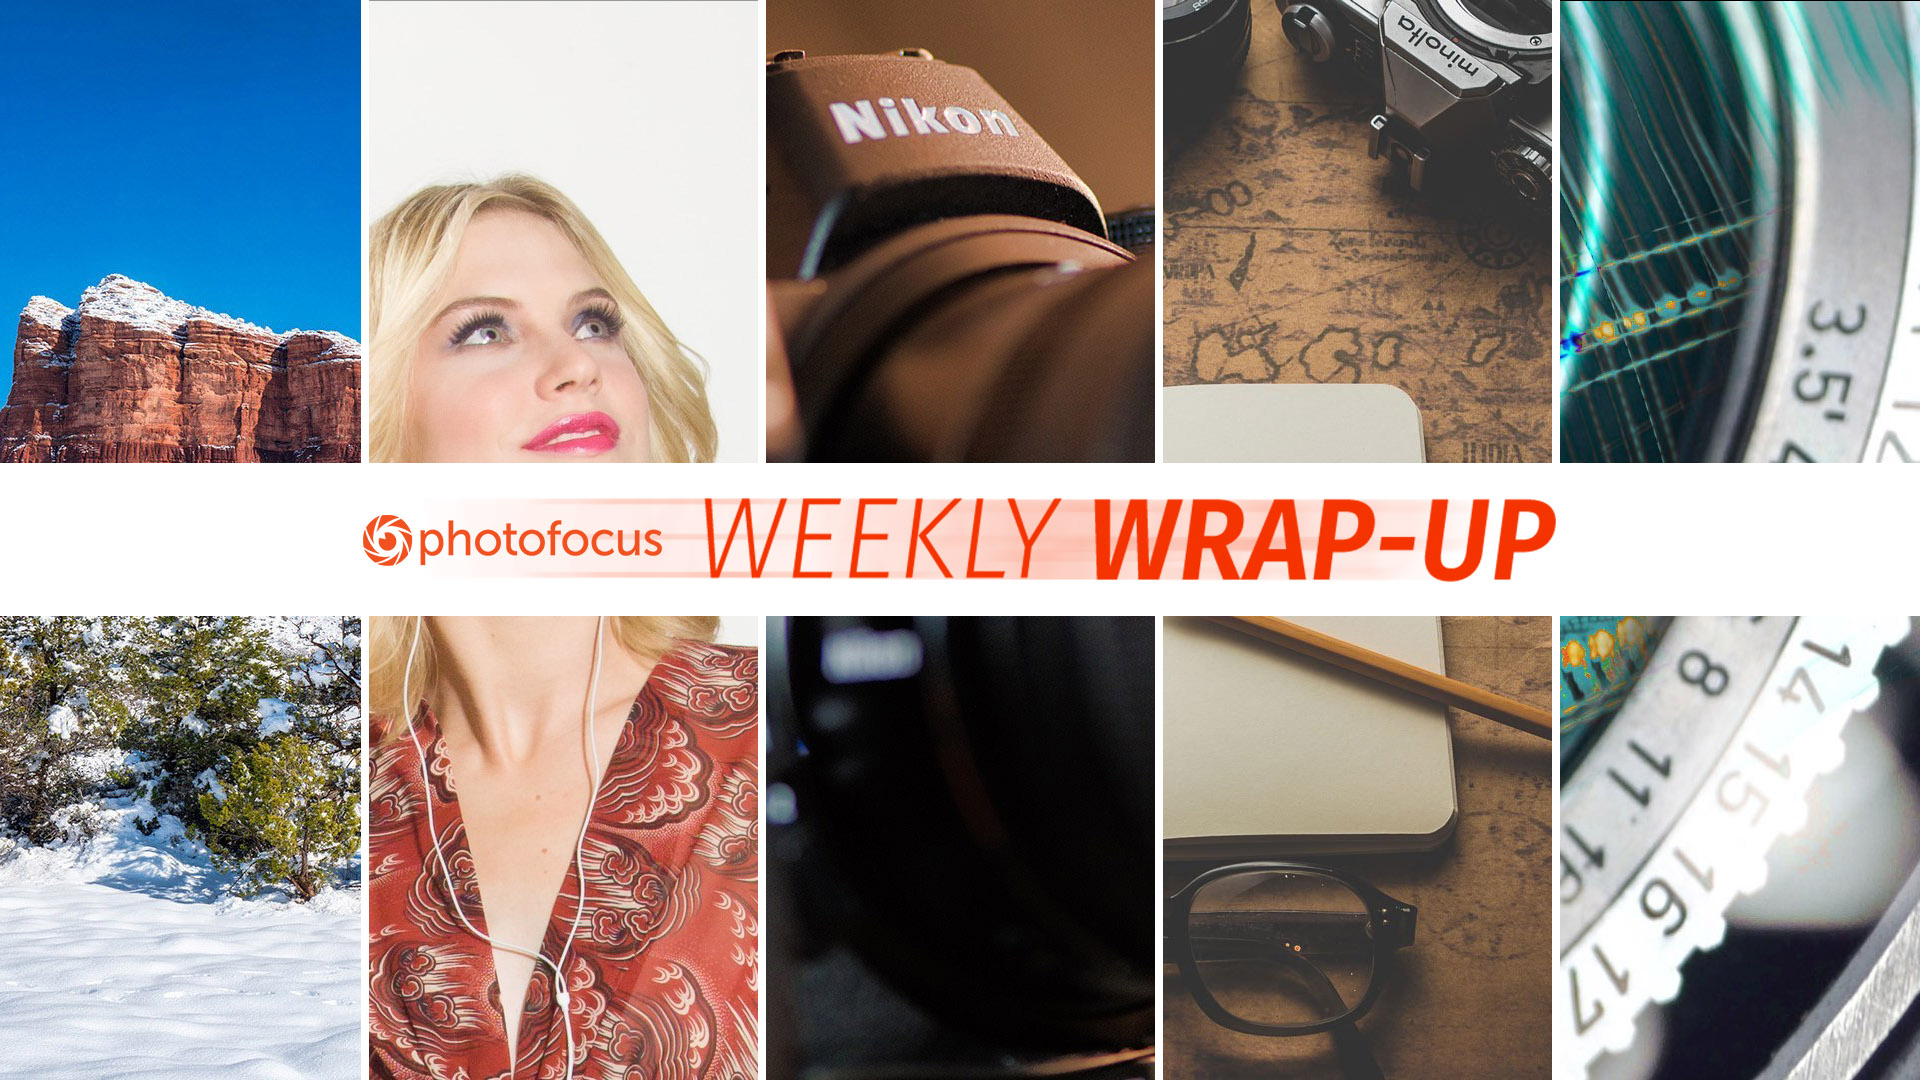 The Photofocus Weekly Wrap-Up for March 10, 2019